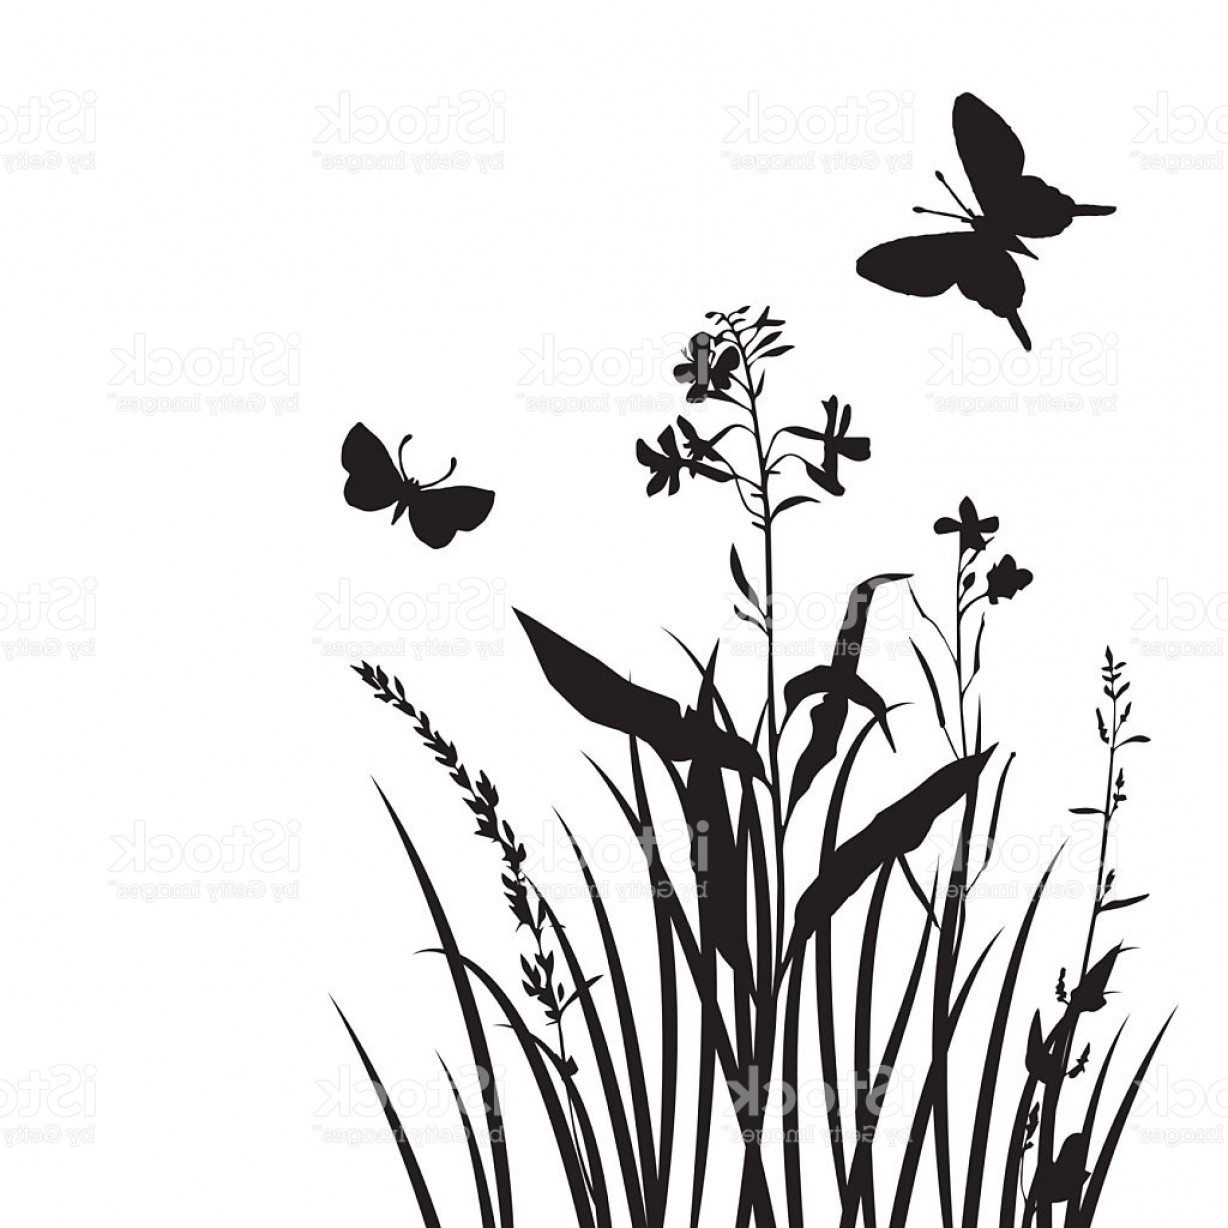 Butter Fly And Flower Vector Black And White: Vector Silhouettes Of Flowers And Grass With Butterflies Gm